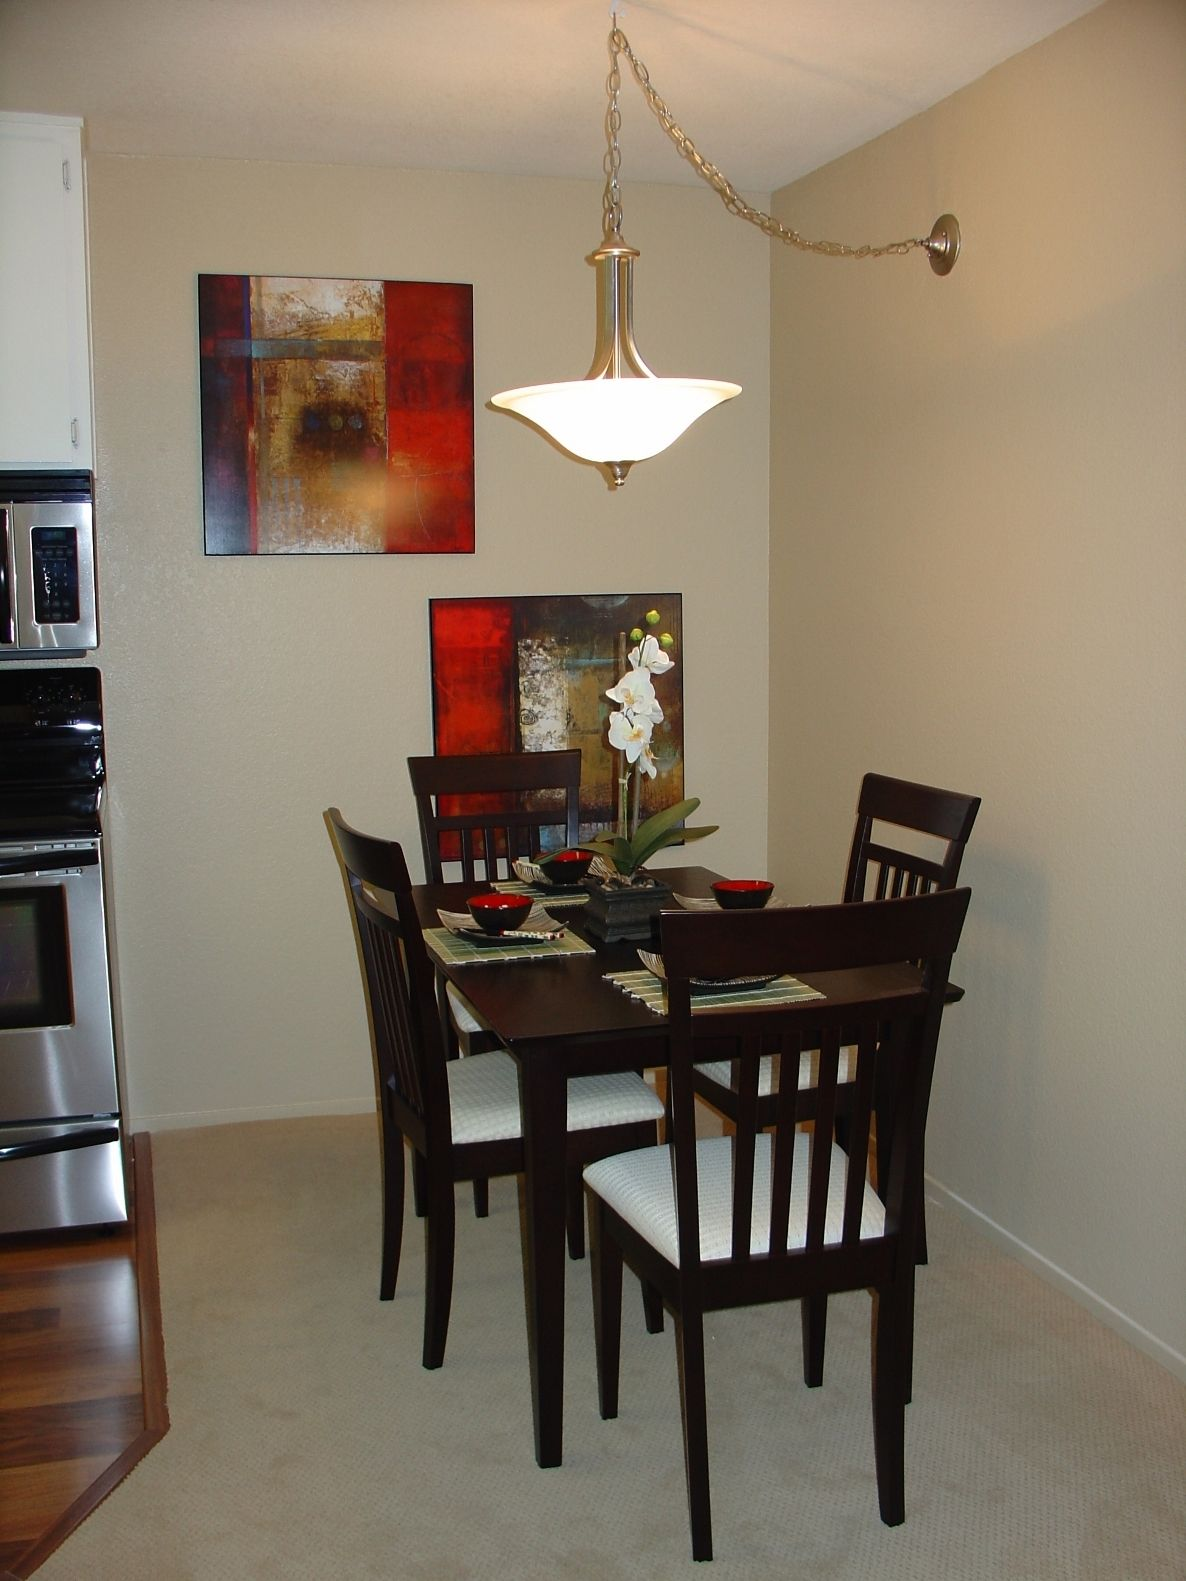 Dining room furniture ideas a small space enricbataller